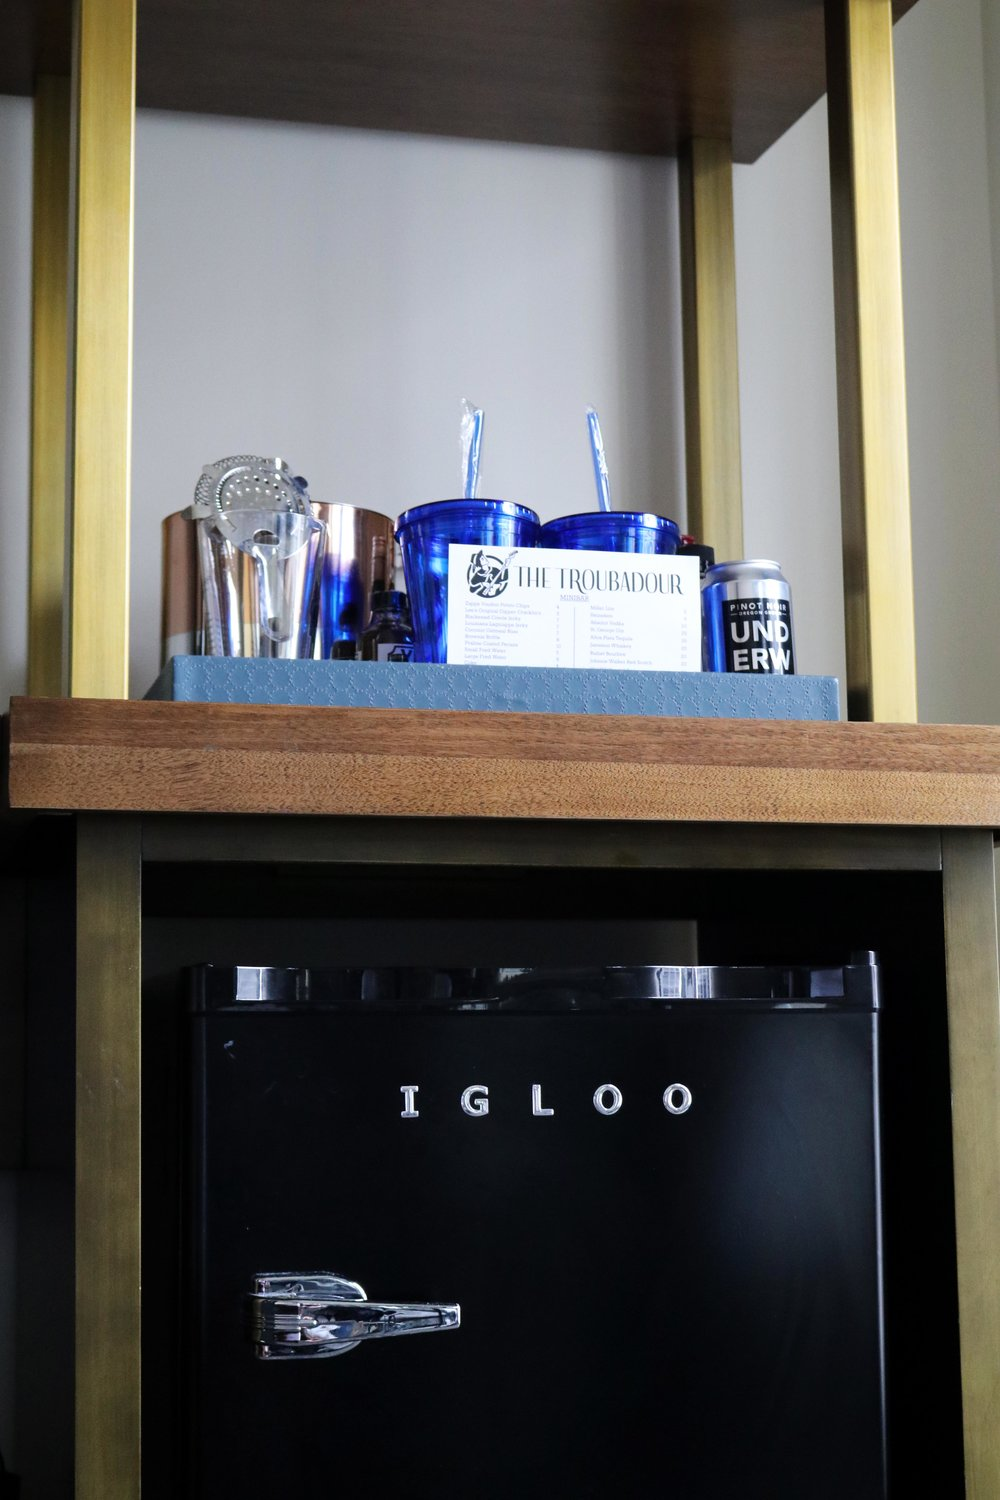 Stocked Mini Bar & Igloo Fridge